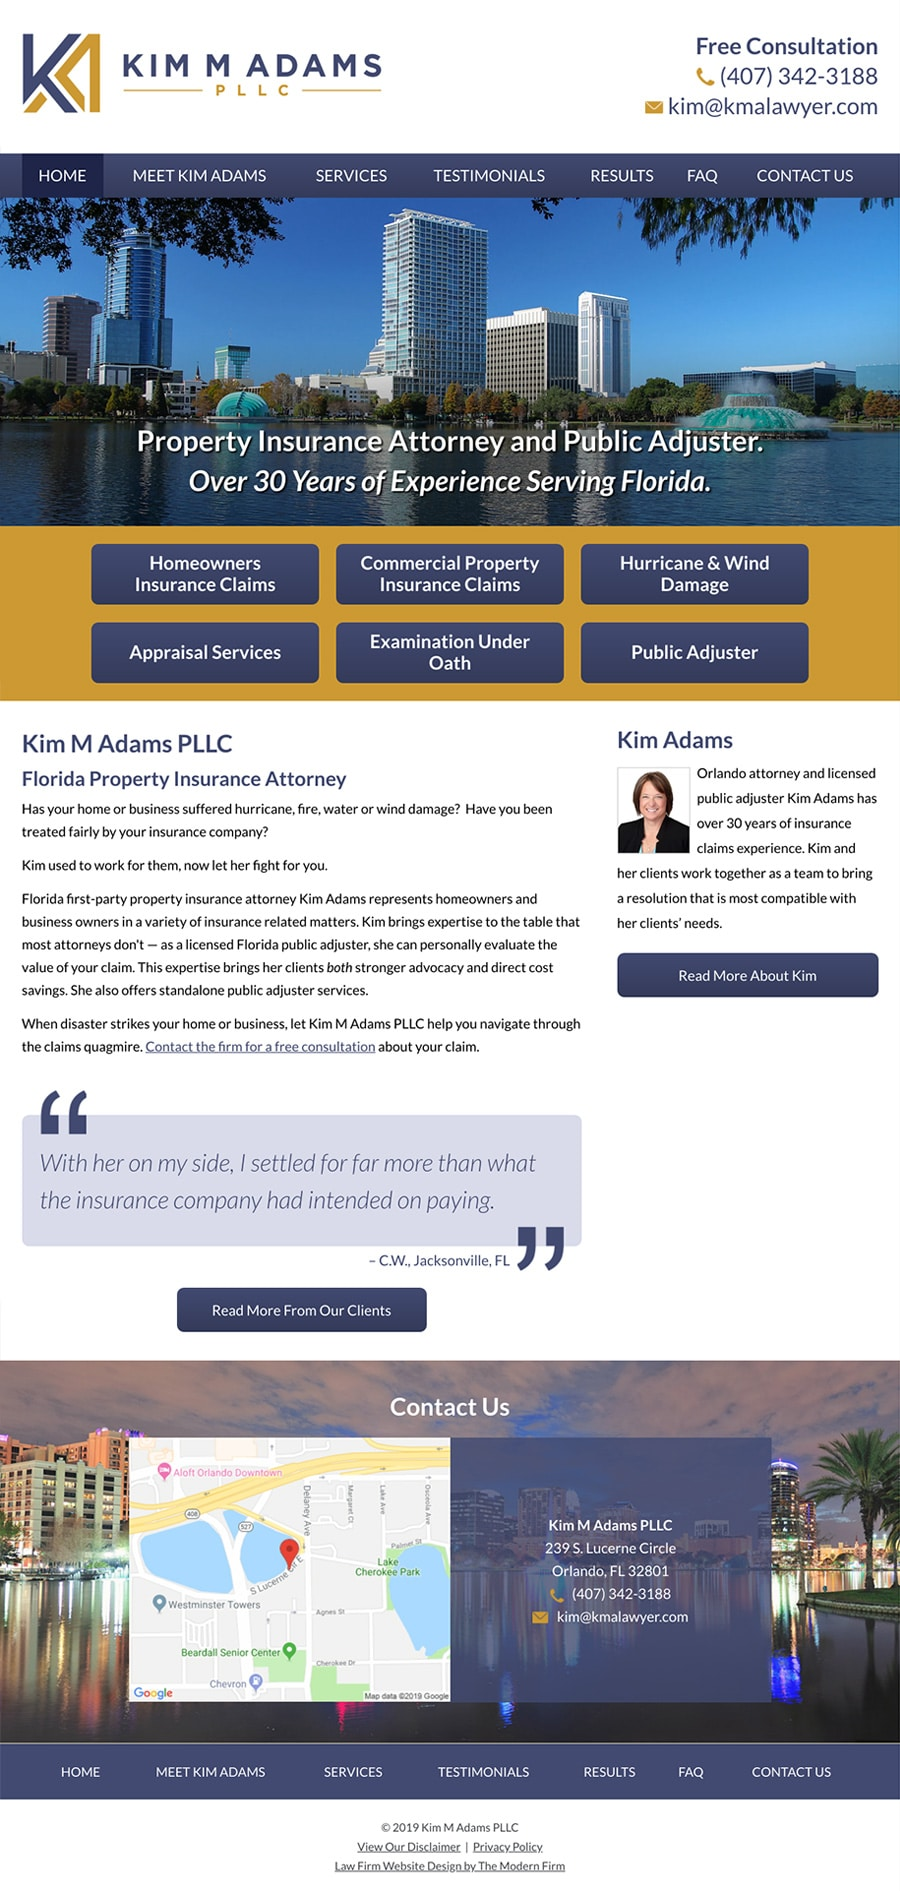 Law Firm Website Design for Kim M Adams PLLC